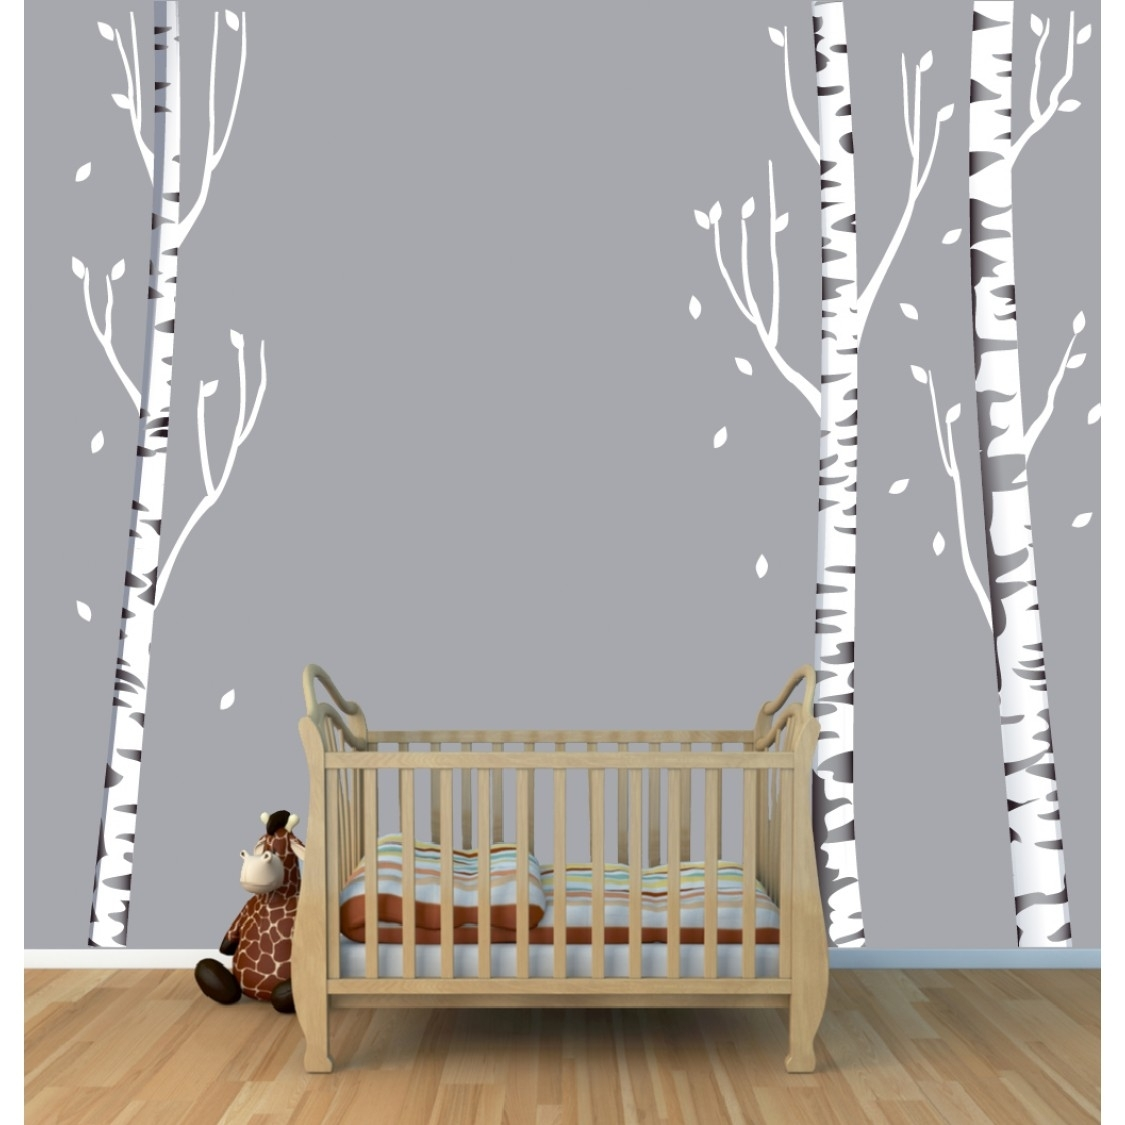 Tree Wall Art With Birch Tree Wall Decals For Kids Rooms with regard to Tree Wall Art (Image 15 of 20)